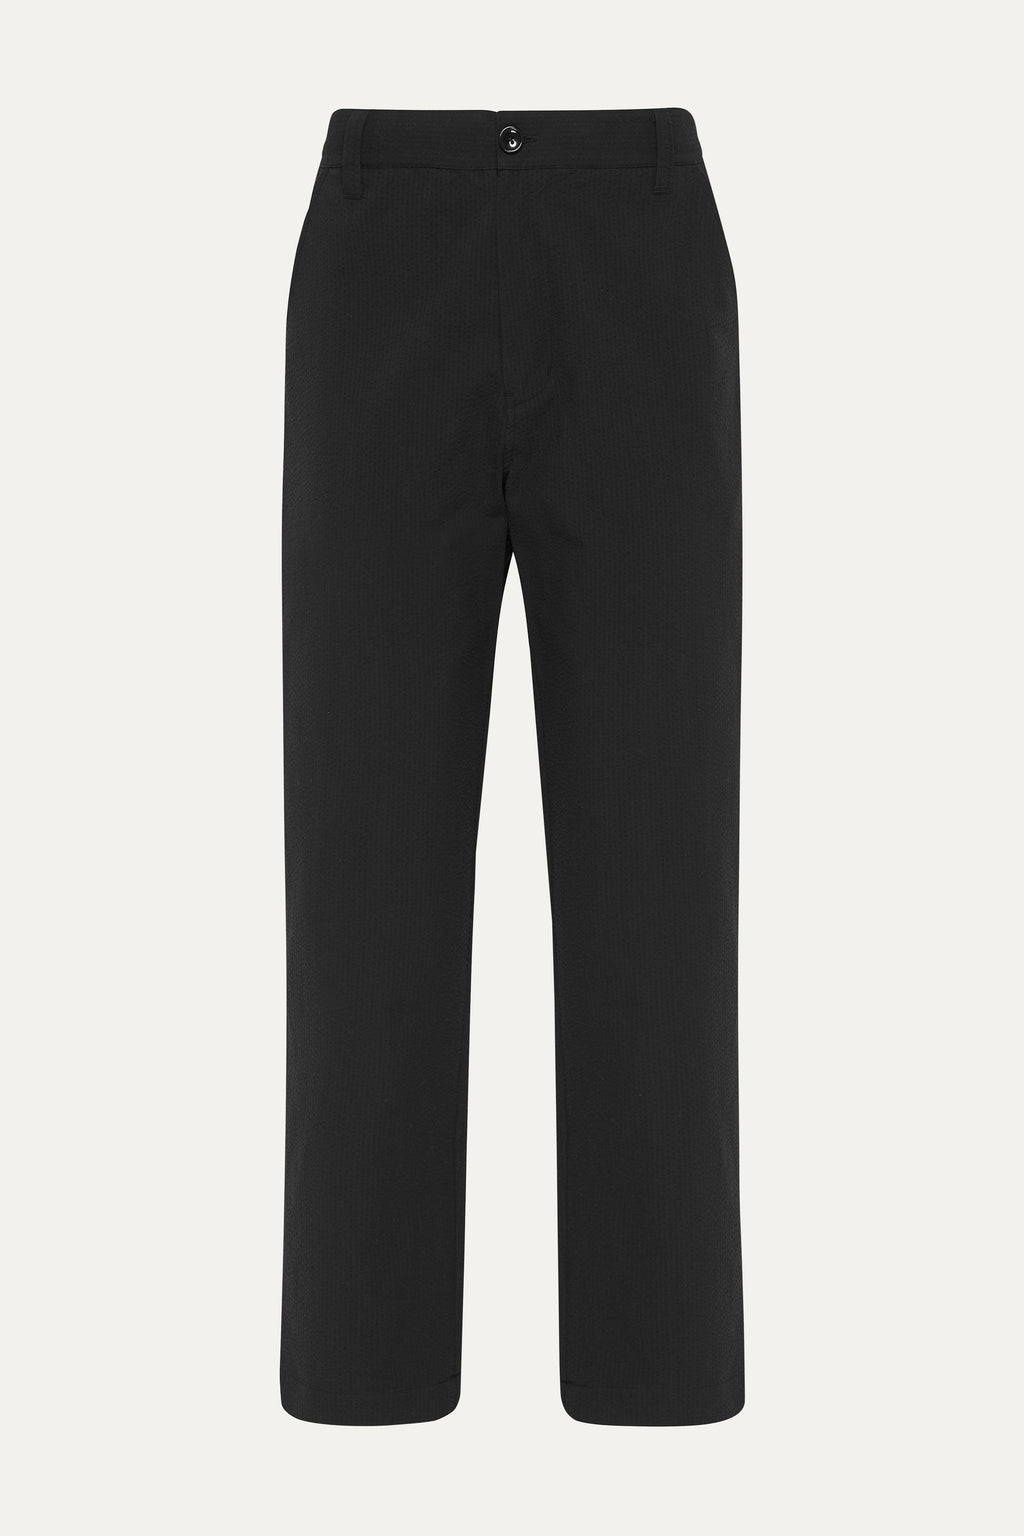 Relaxed Seersucker Suit Pant